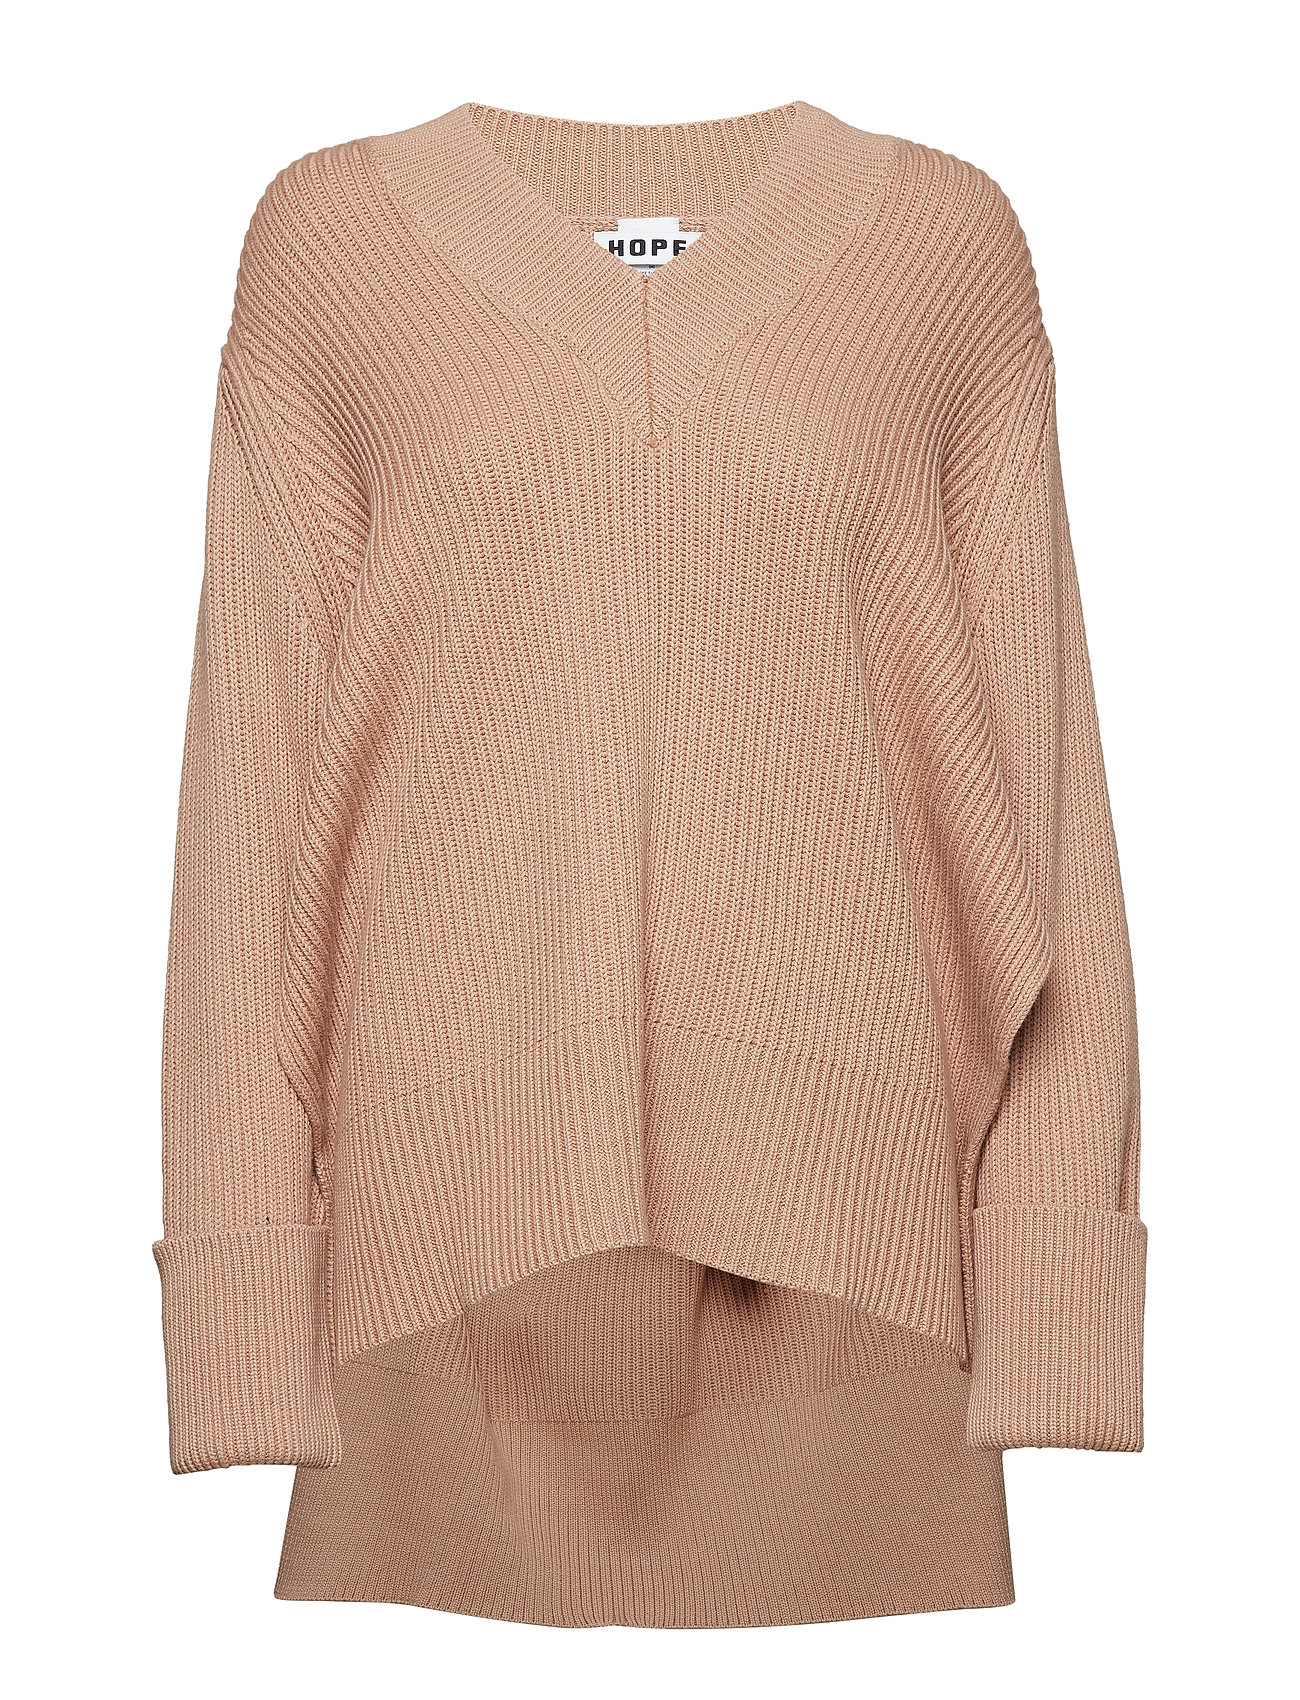 Hope Moon Sweater - PINK SAND